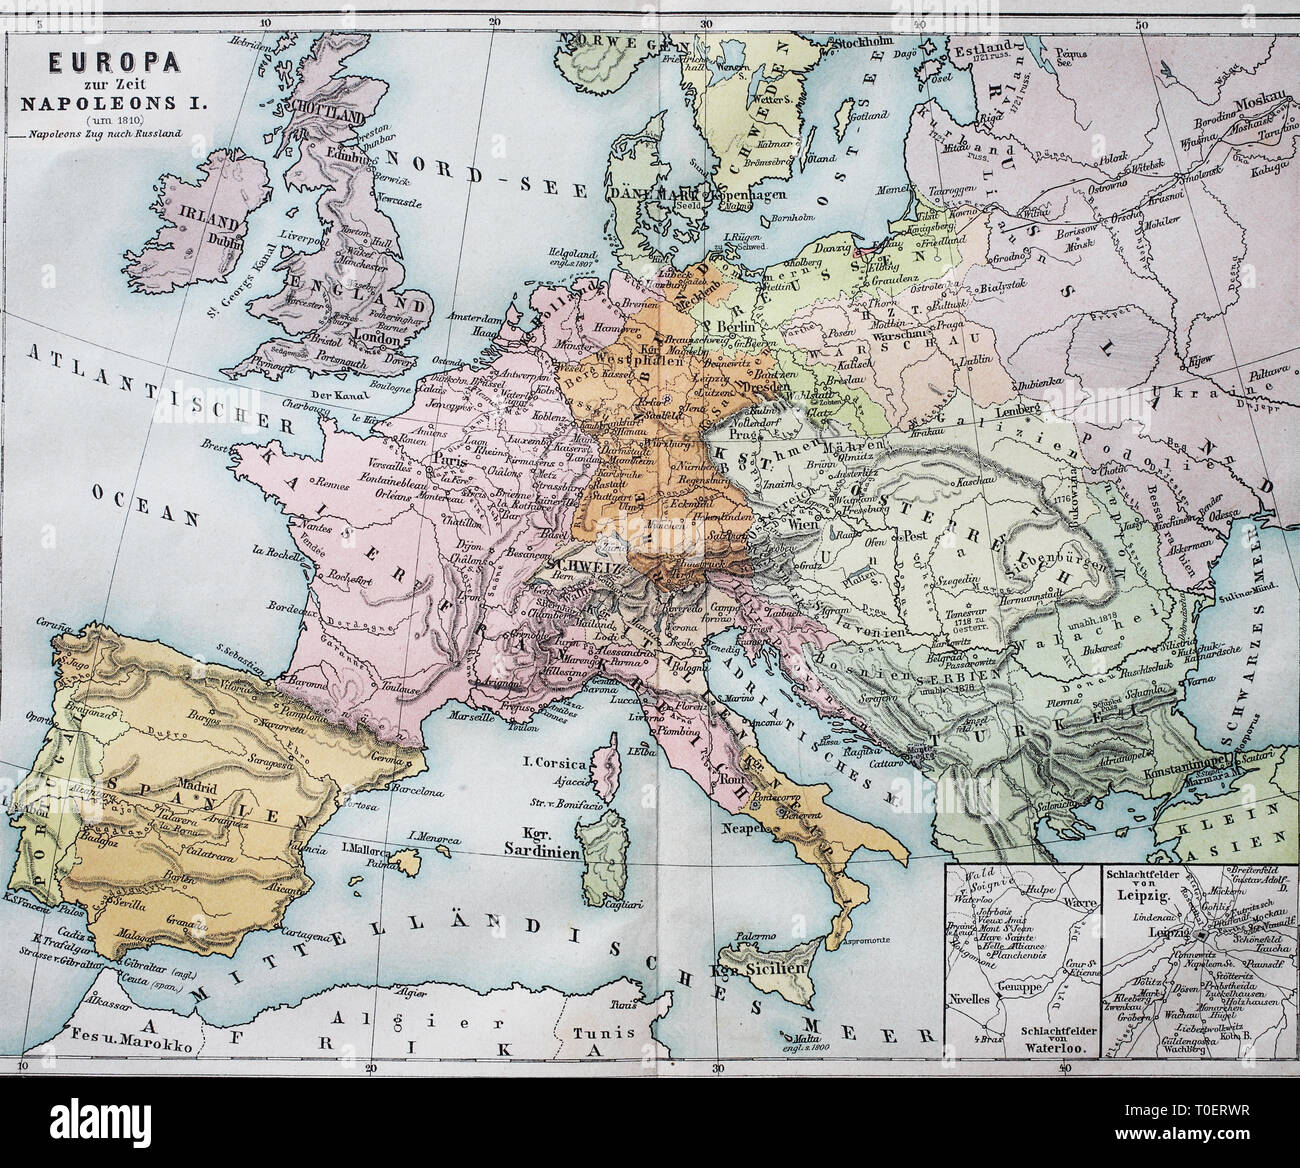 Historical map of Europe from the time of Napoleon I.  /  Historische Landkarte von Europa zur Zeit von Napoleon I. - Stock Image